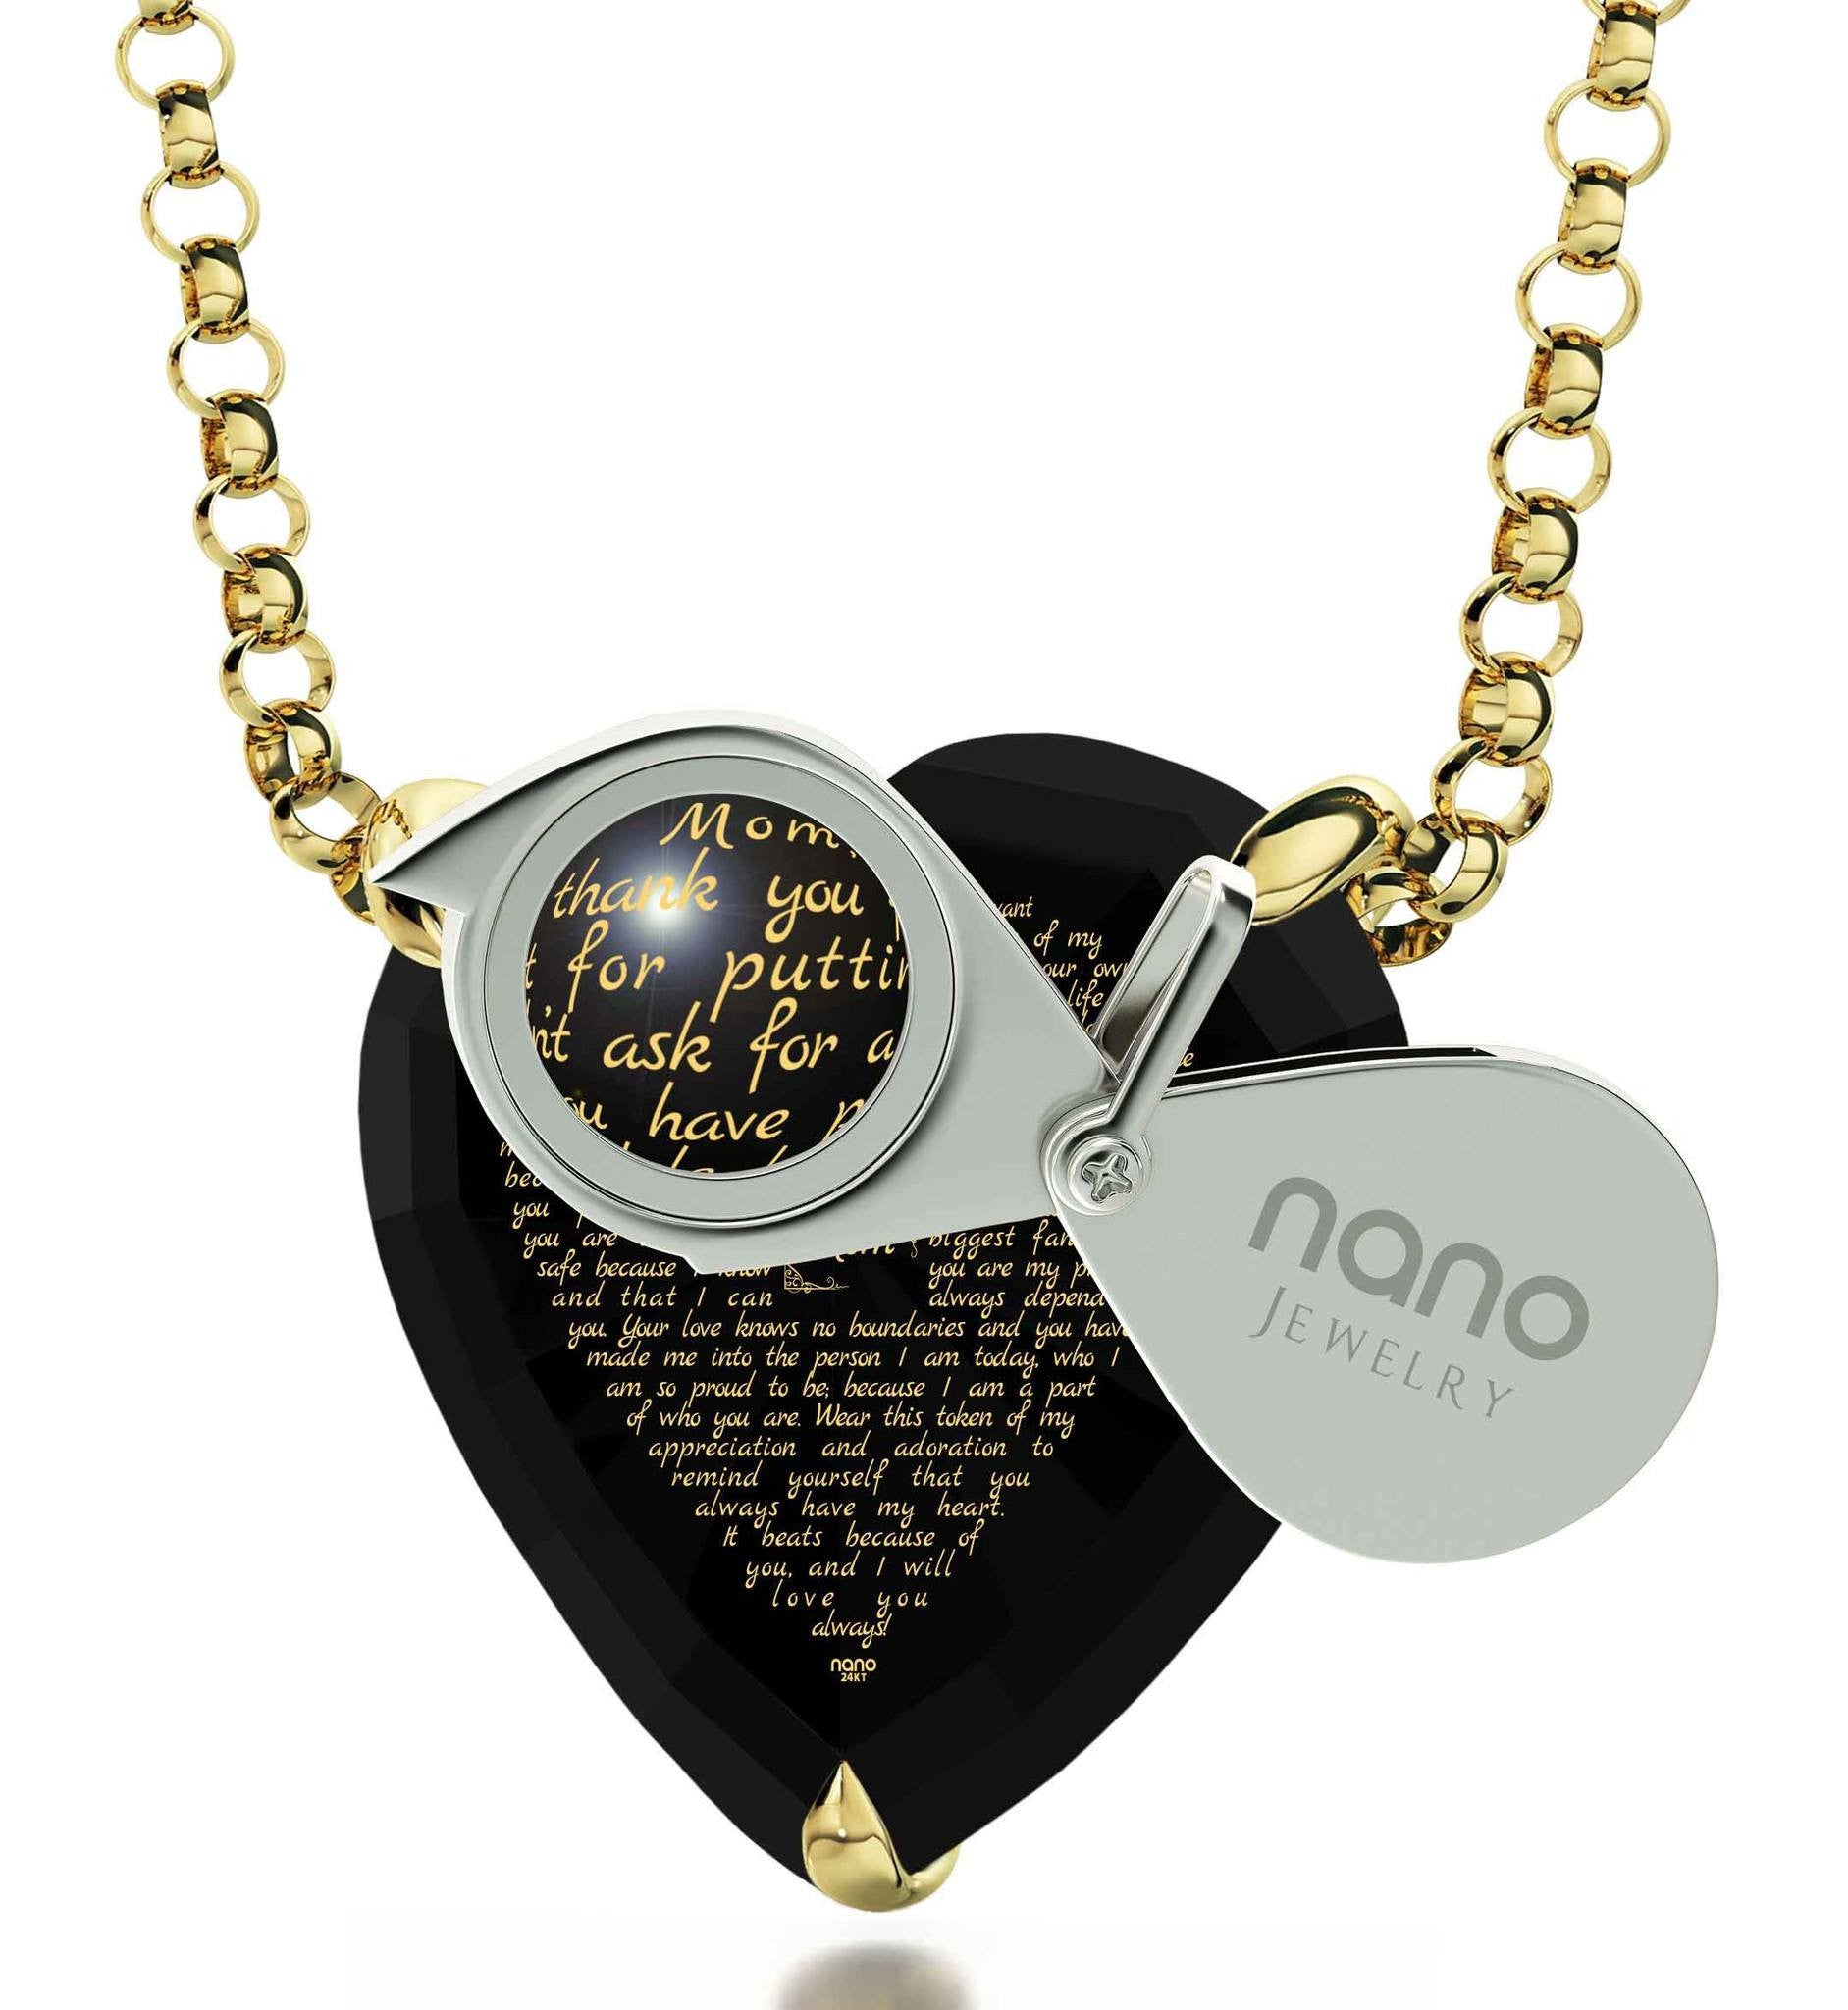 Presents for Mom's Birthday, 14k Gold Necklace, CZ Black Heart, Awesome Mother's Day Gifts